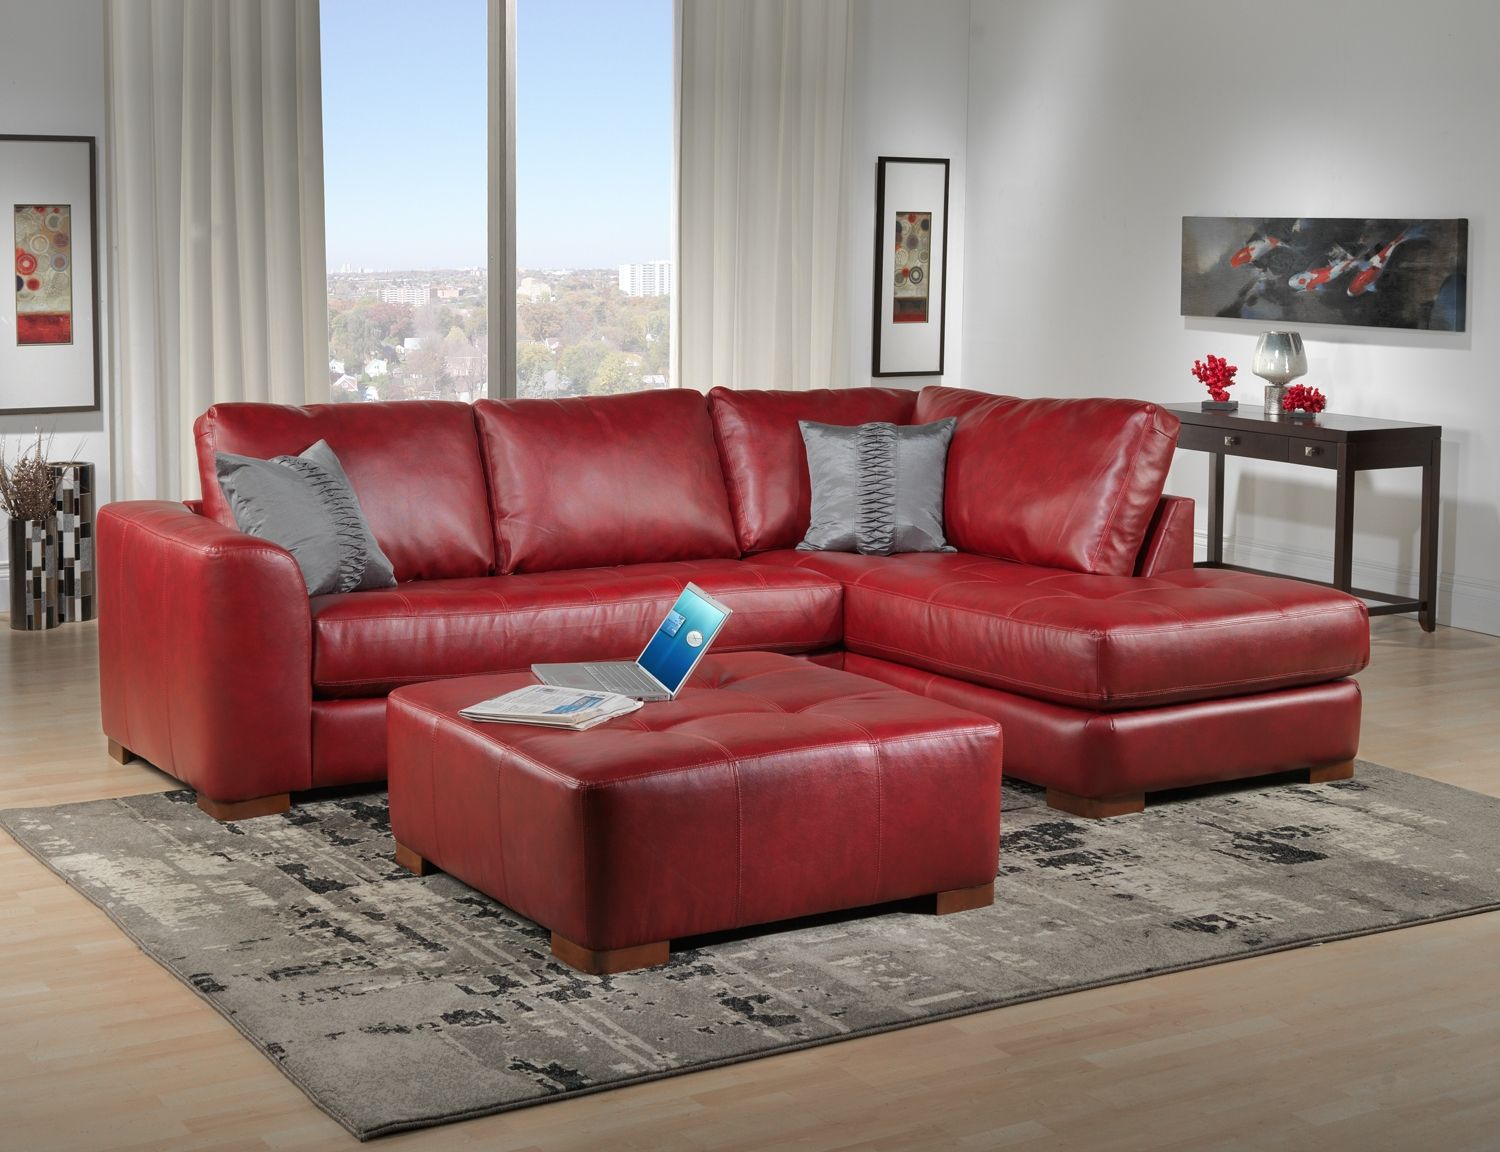 Red Leather Couches Red Leather Sofa Living Room Red Leather